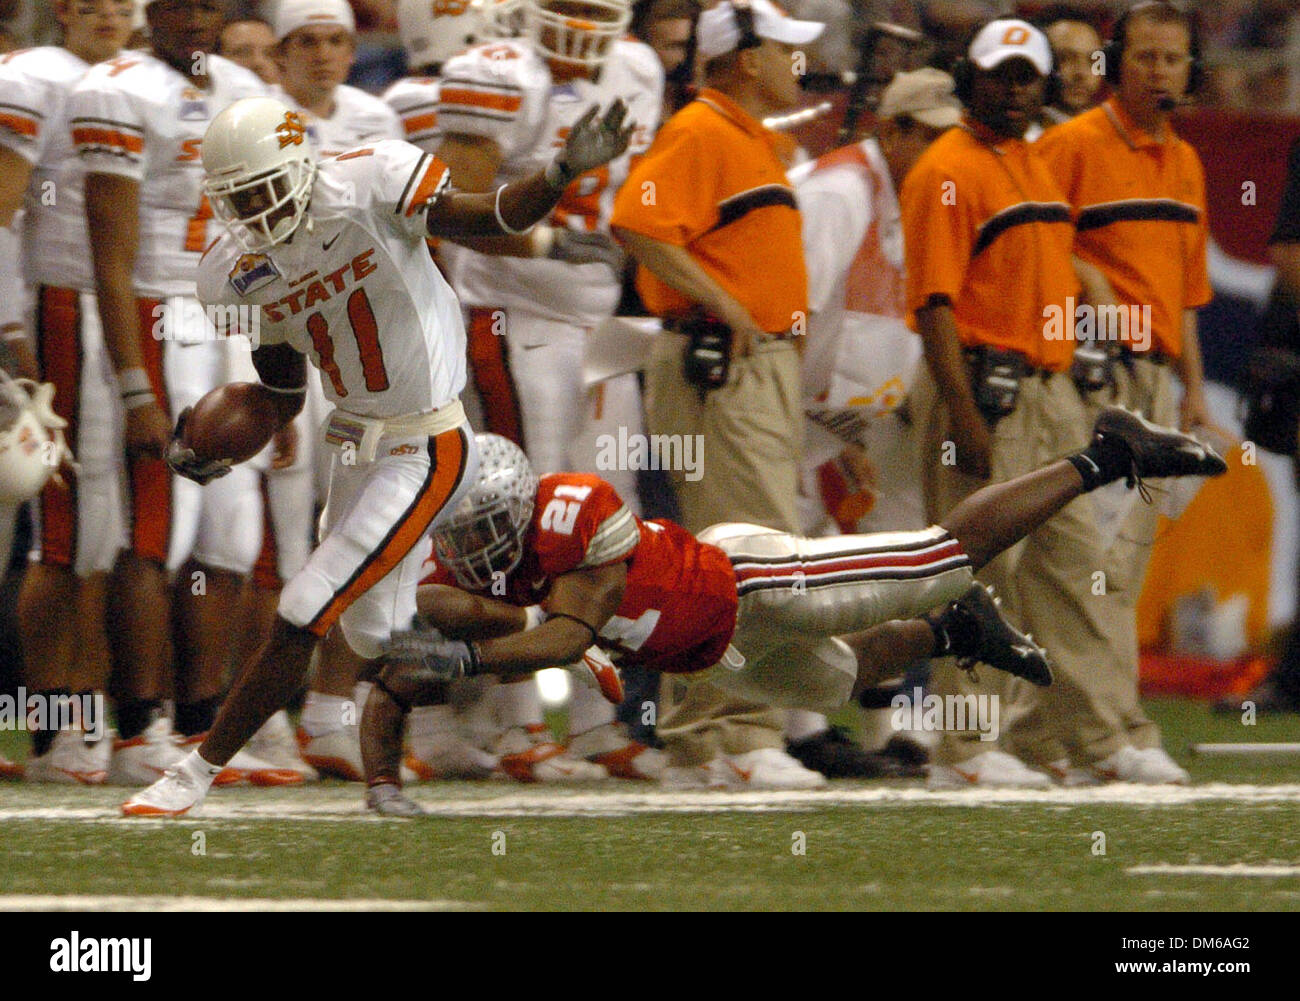 Dec 29, 2004; San Antonio, TX, USA; NCAA Football - Ohio State's Nate Salley (21) dives to catch Oklahoma State's Prentiss Elliott (11) during the 2004 MasterCard Alamo Bowl at the Alamo dome in San Antonio. - Stock Image